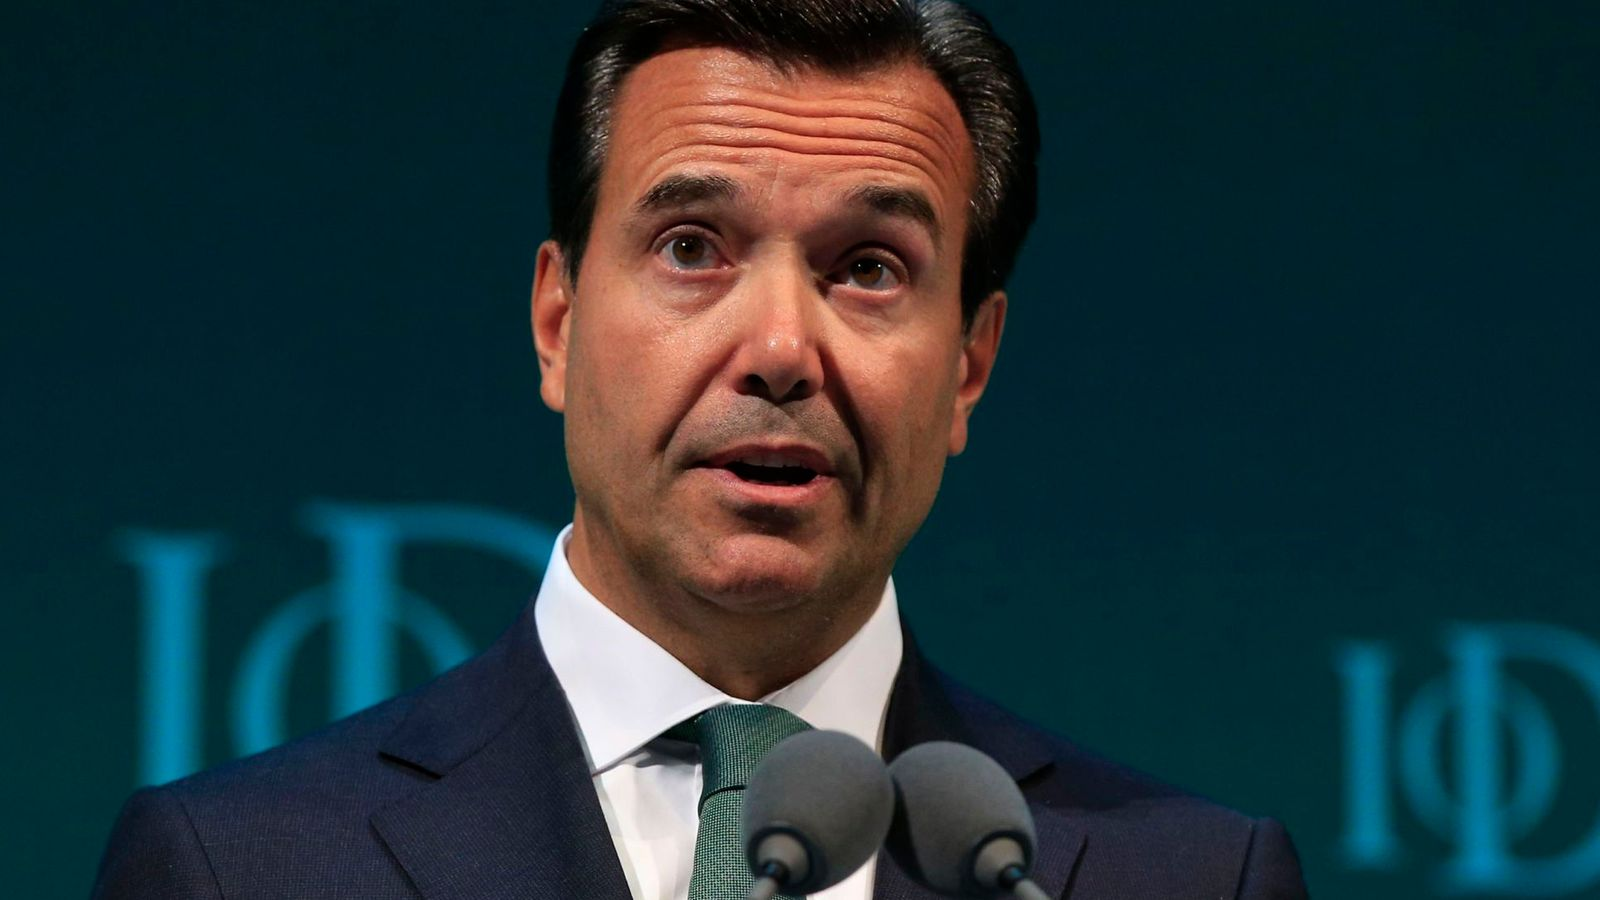 Lloyds chief executive Antonio Horta-Osorio to retire from bank next year | Business News